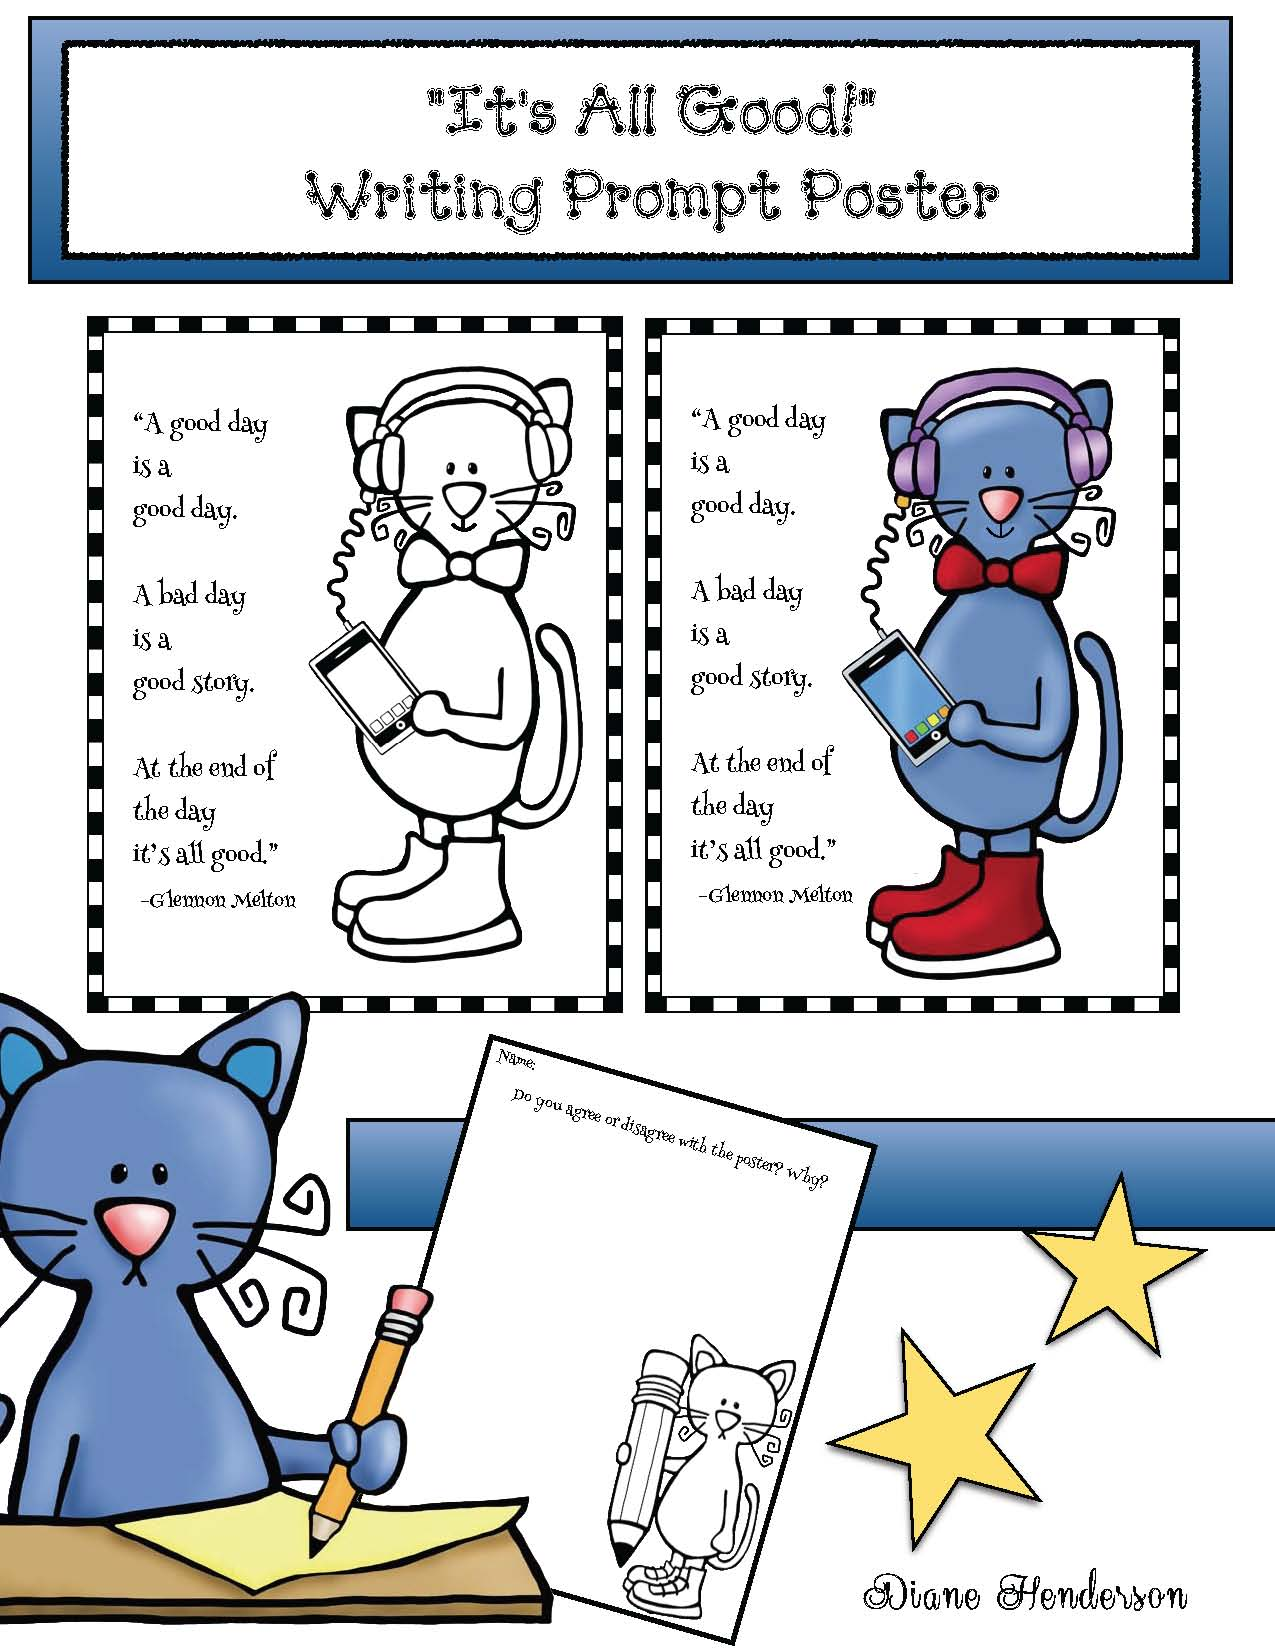 pete the cat activities, pete the cat crafts, 5 senses activities, cat crafts, back to school writing prompts, back to school bulletin boards, icebreakers, icebreakers for back to school, getting to know you activities